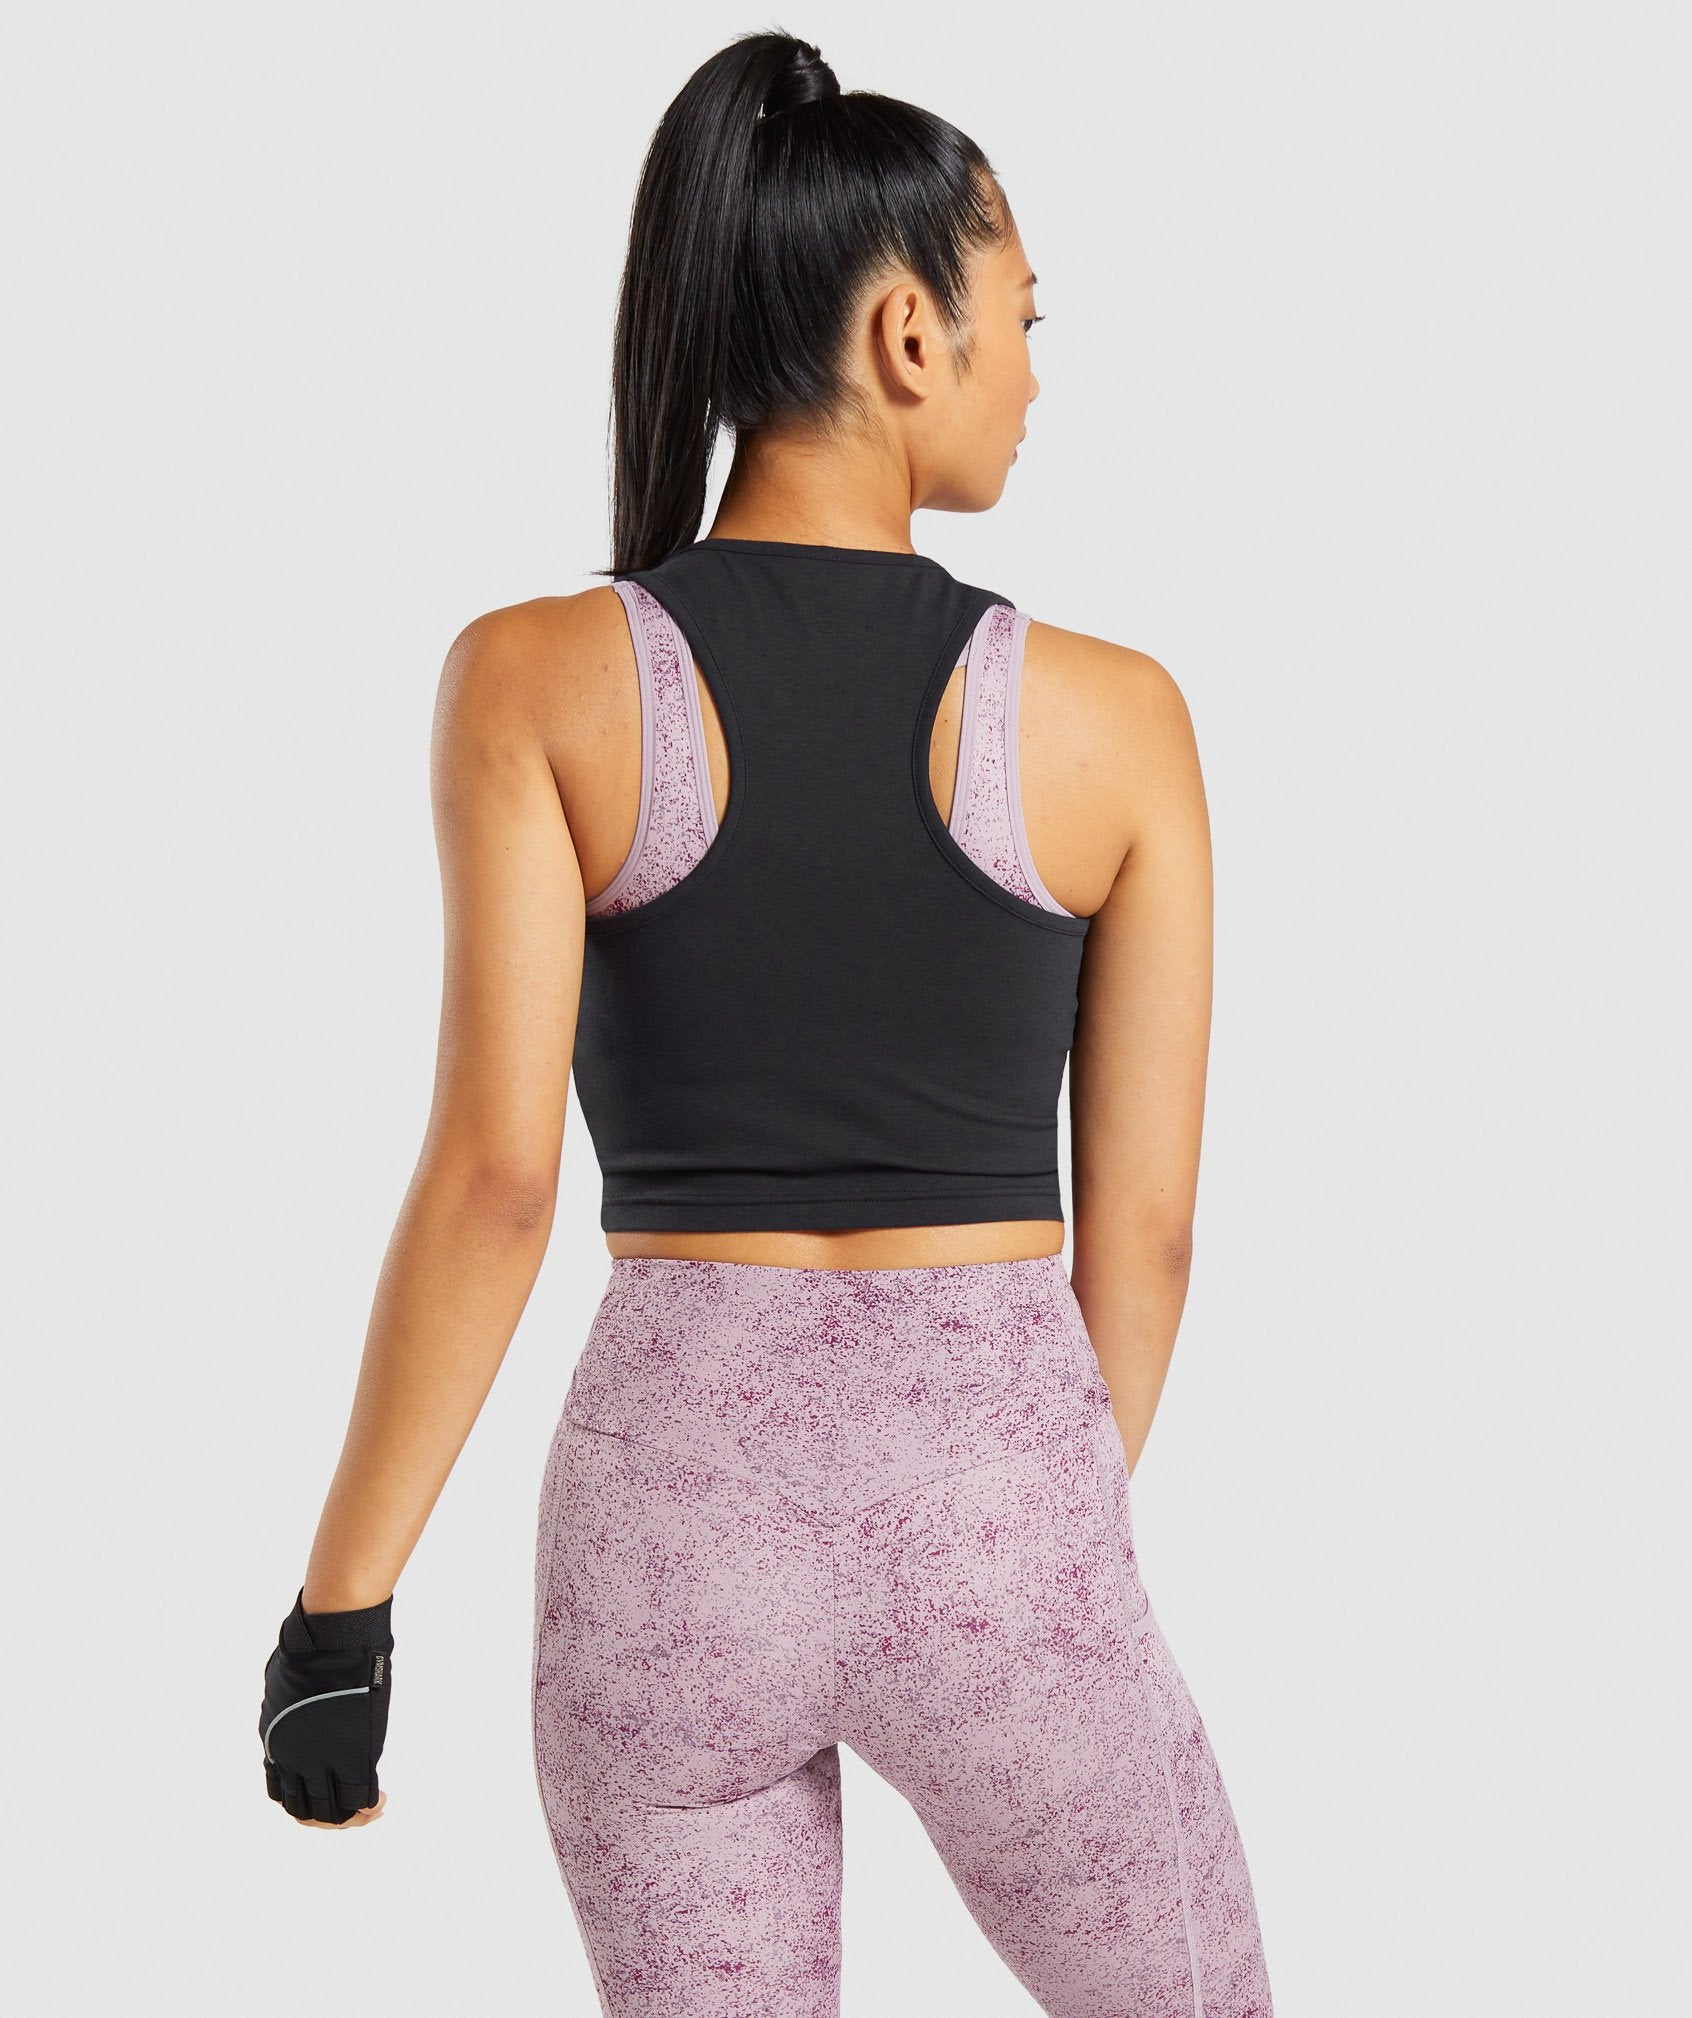 Classier: Buy Gymshark Chalk Graphic Crop Vest - Black - Gymshark